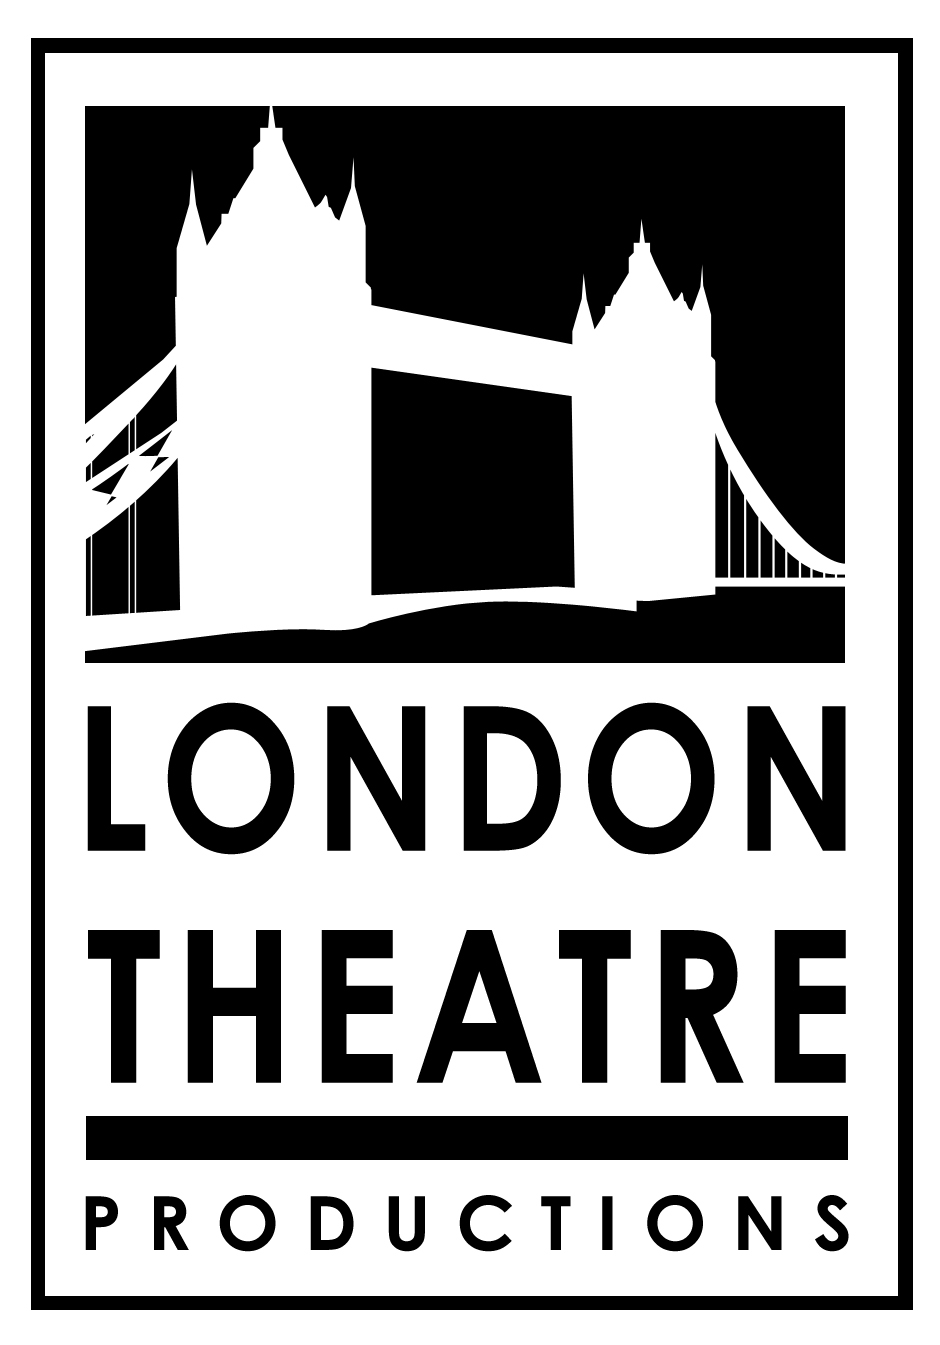 London Theatre Productions press office | hosted by Press Dispensary: https://www.pressdispensary.co.uk/releases/q99976.html